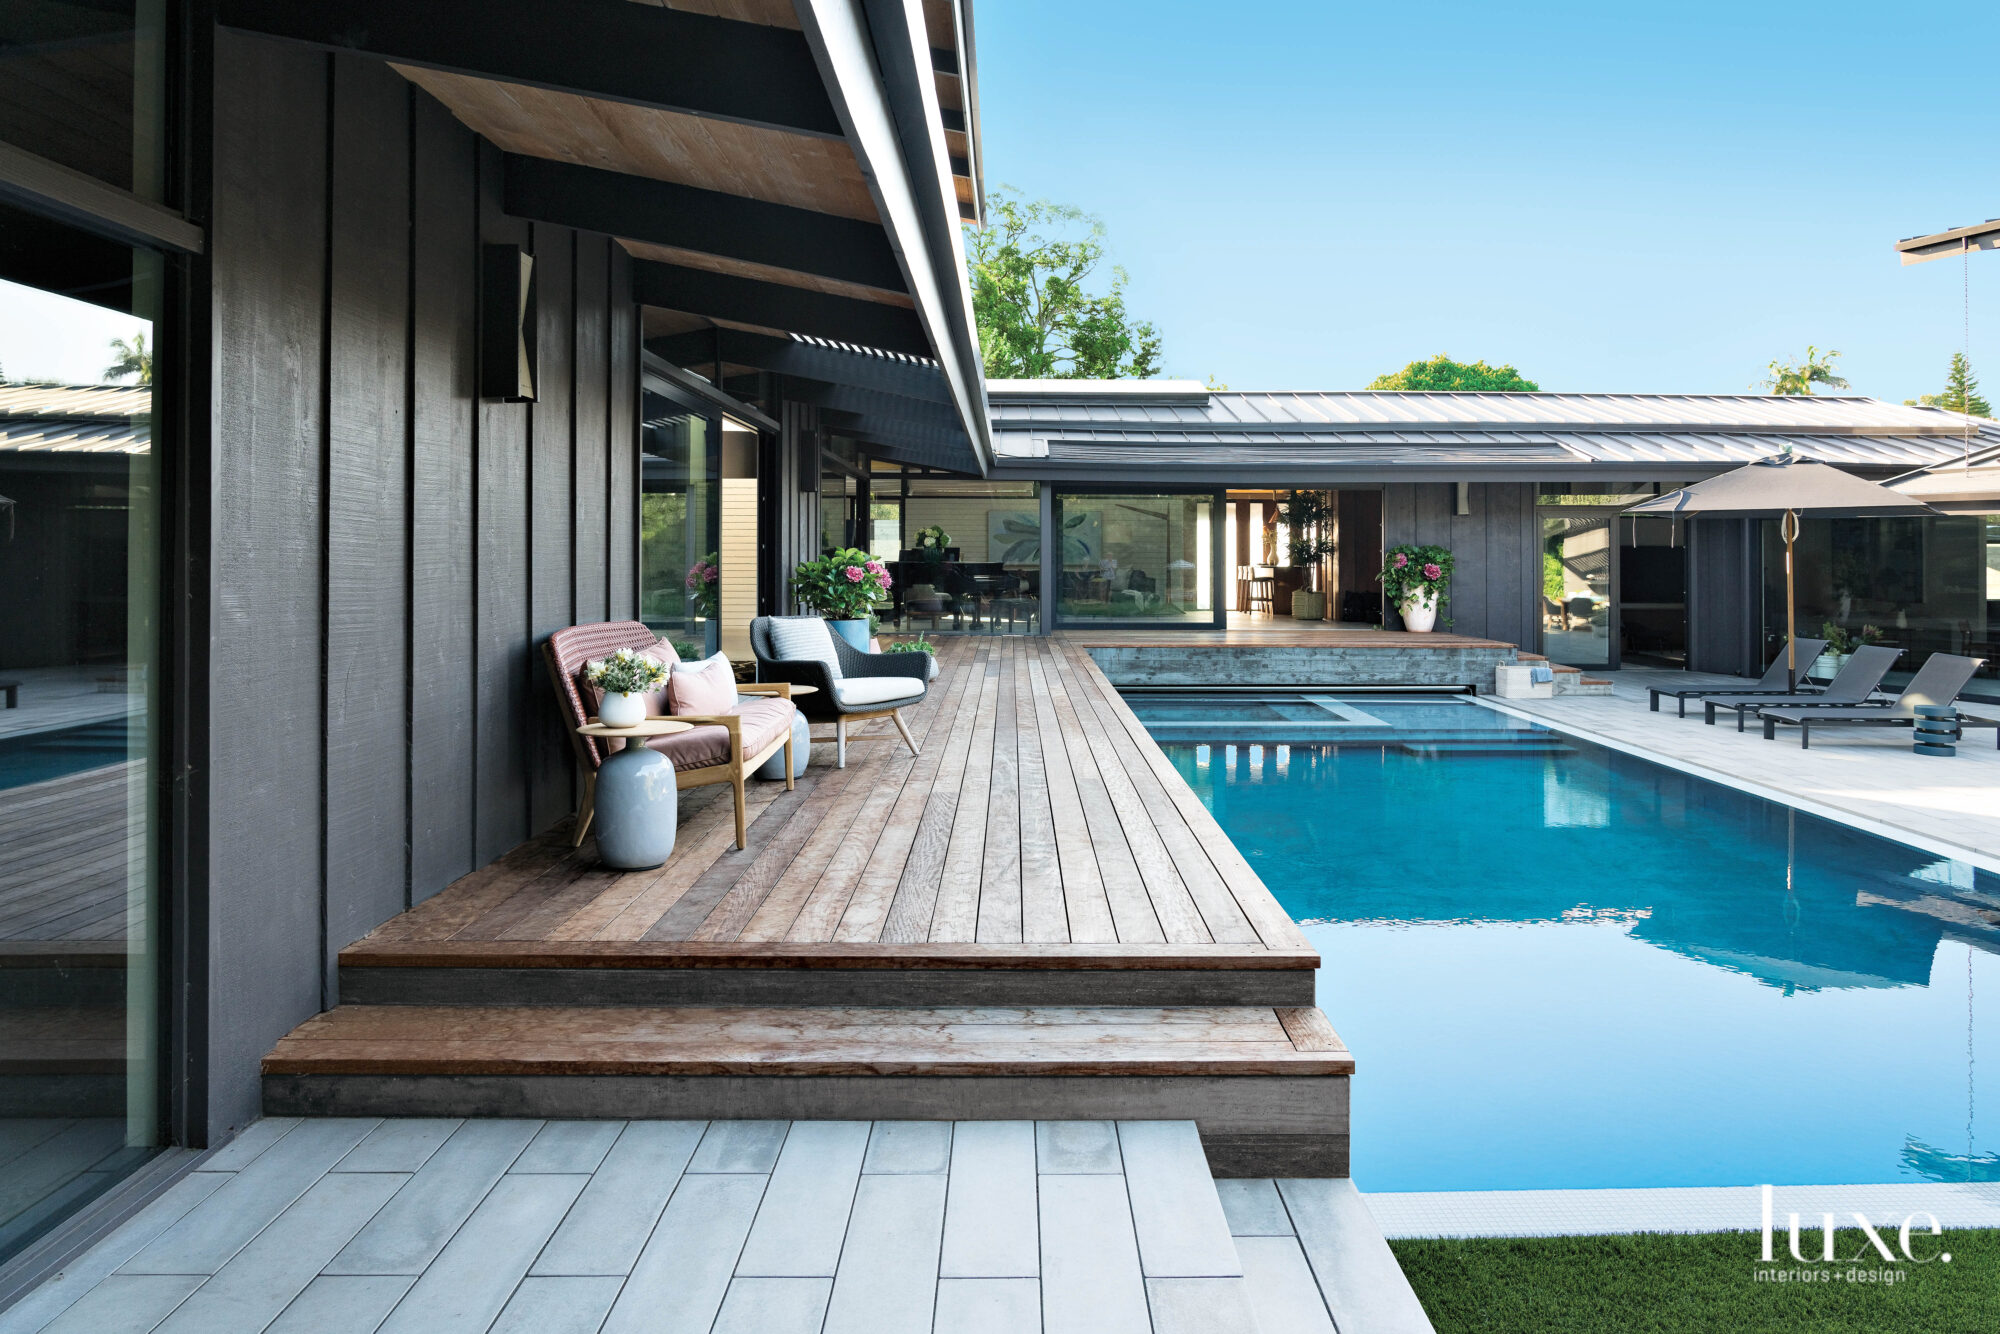 Terrace overlooking pool